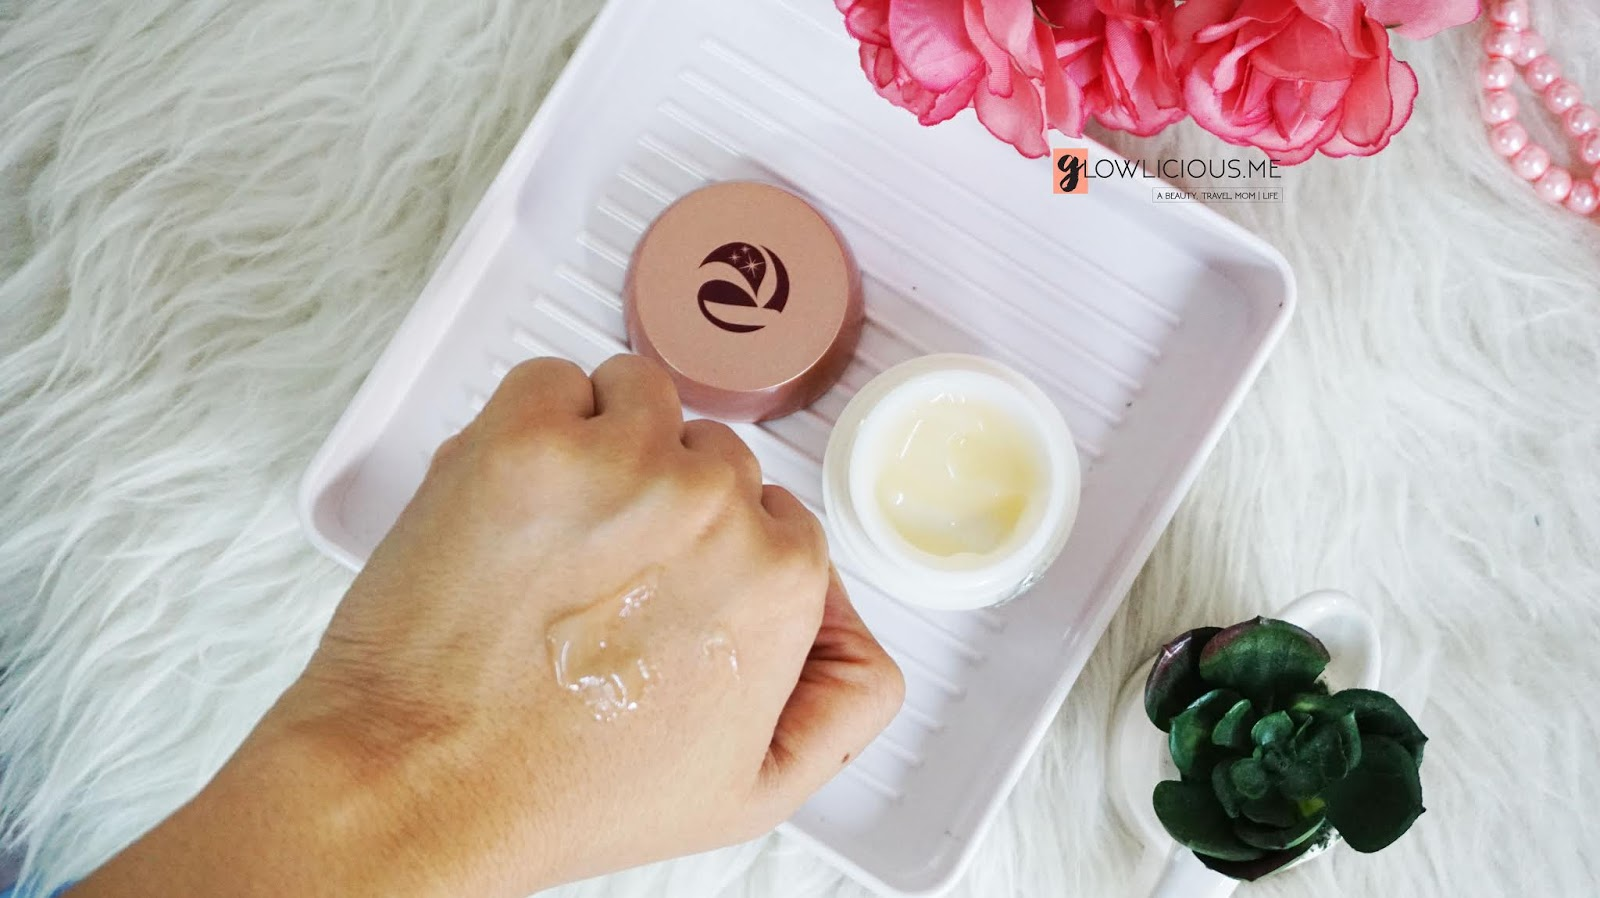 Rubiena BrighteningNight Moisturizing Gel